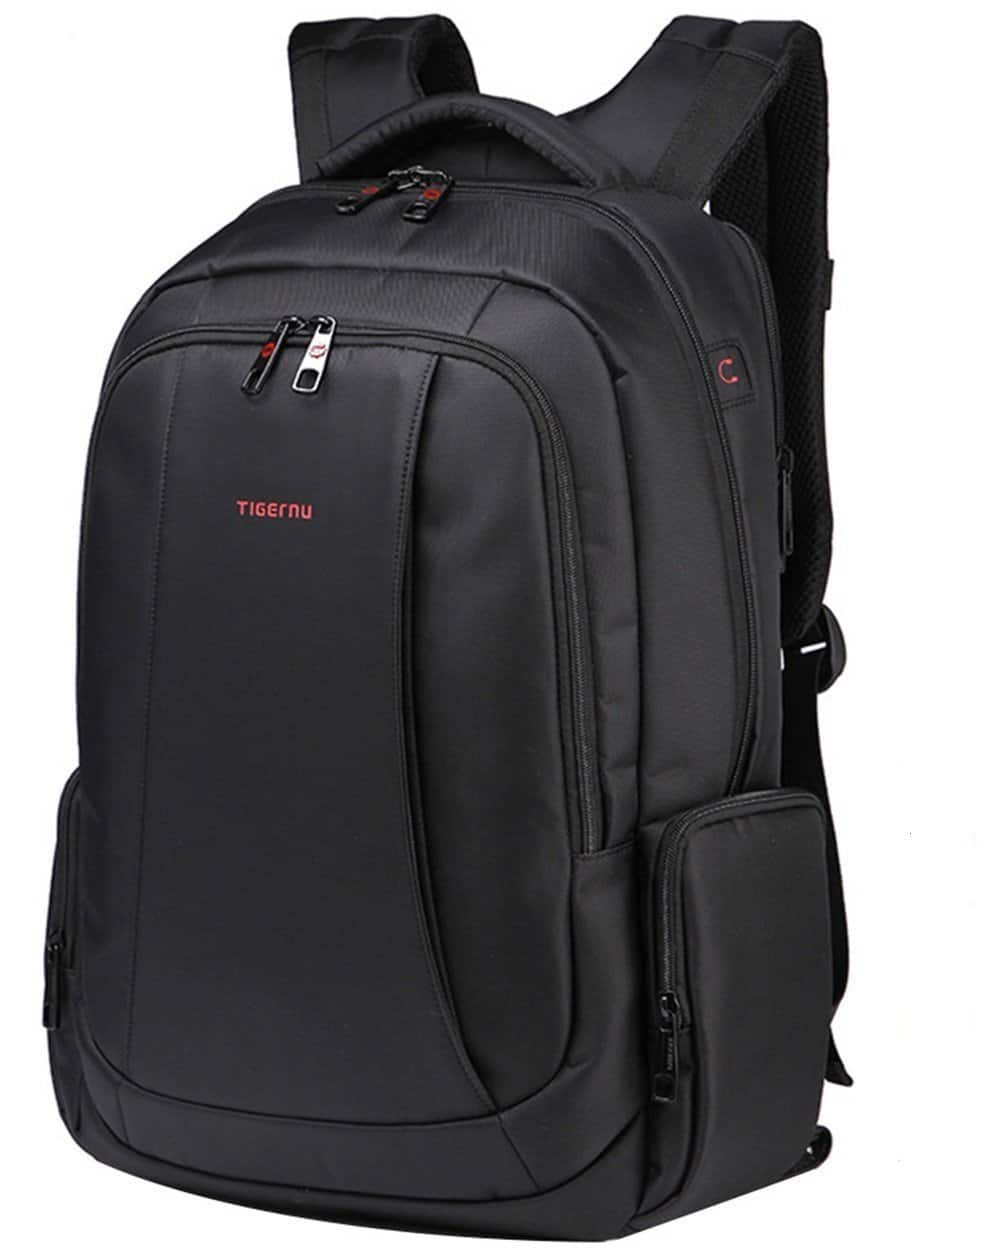 Slim Business Laptop Backpack Anti-theft Travel Bag Up To 15.6 Black $28.85 AC Amazon $28.55